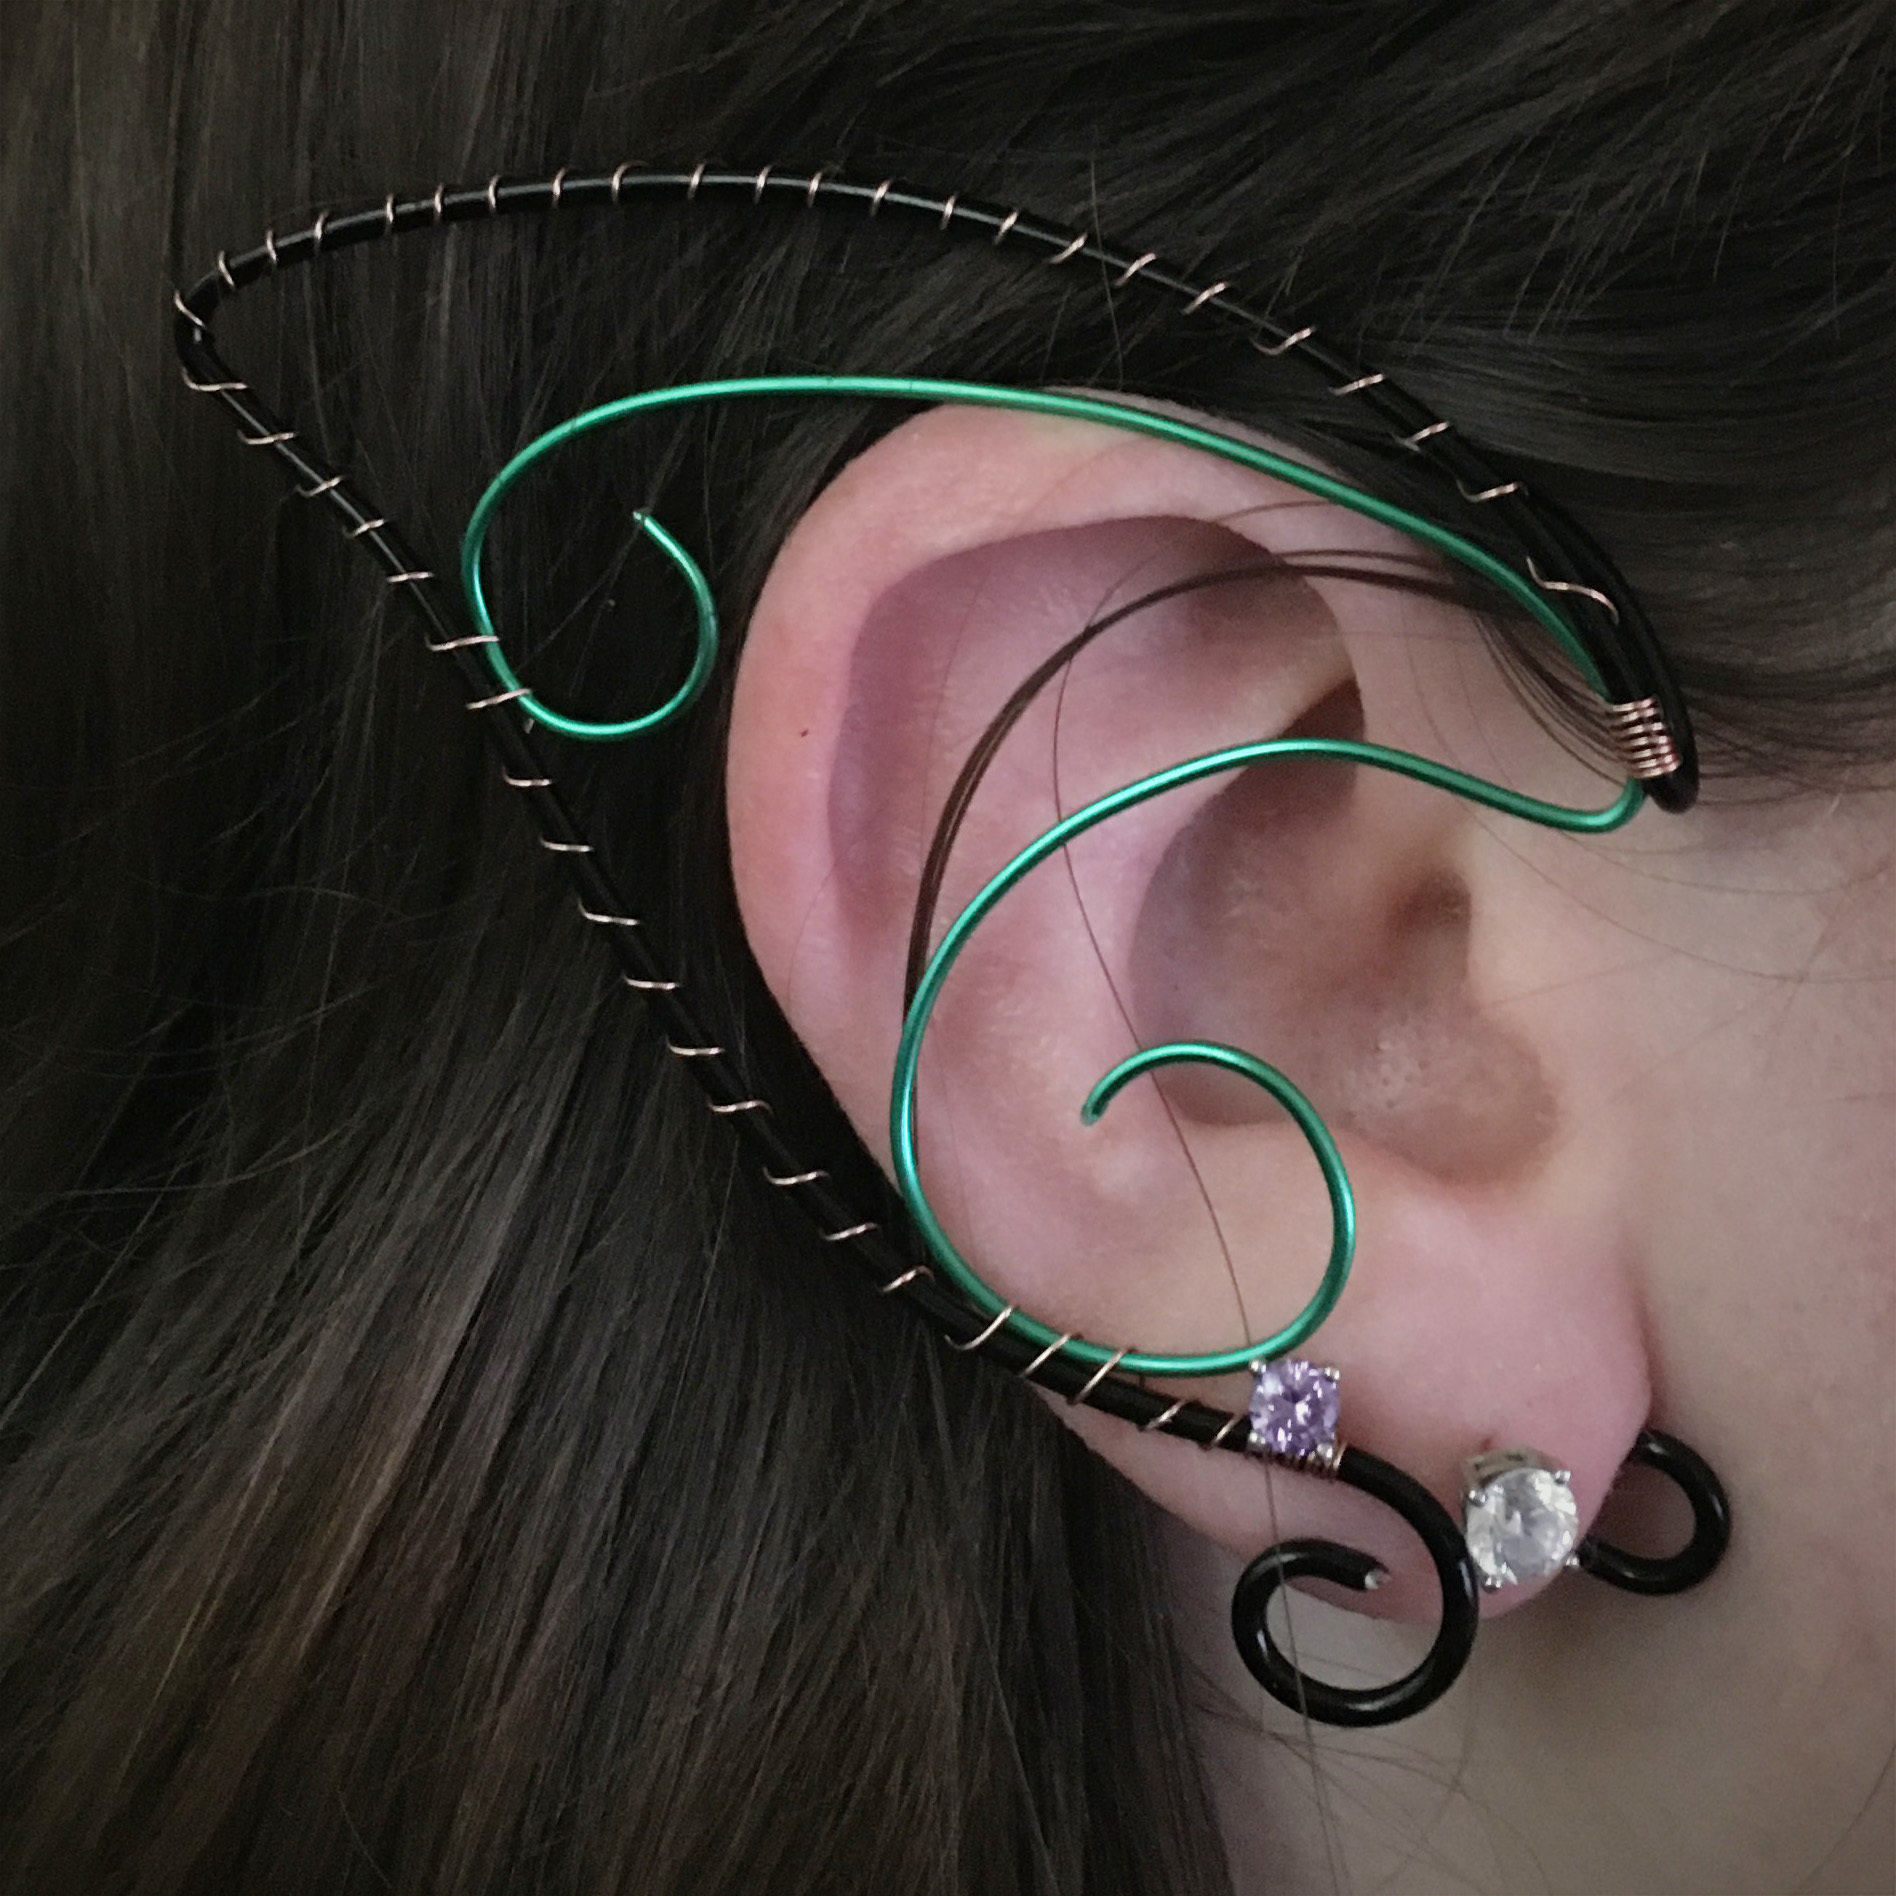 Elf Ear Cuff - Black and Green EC015